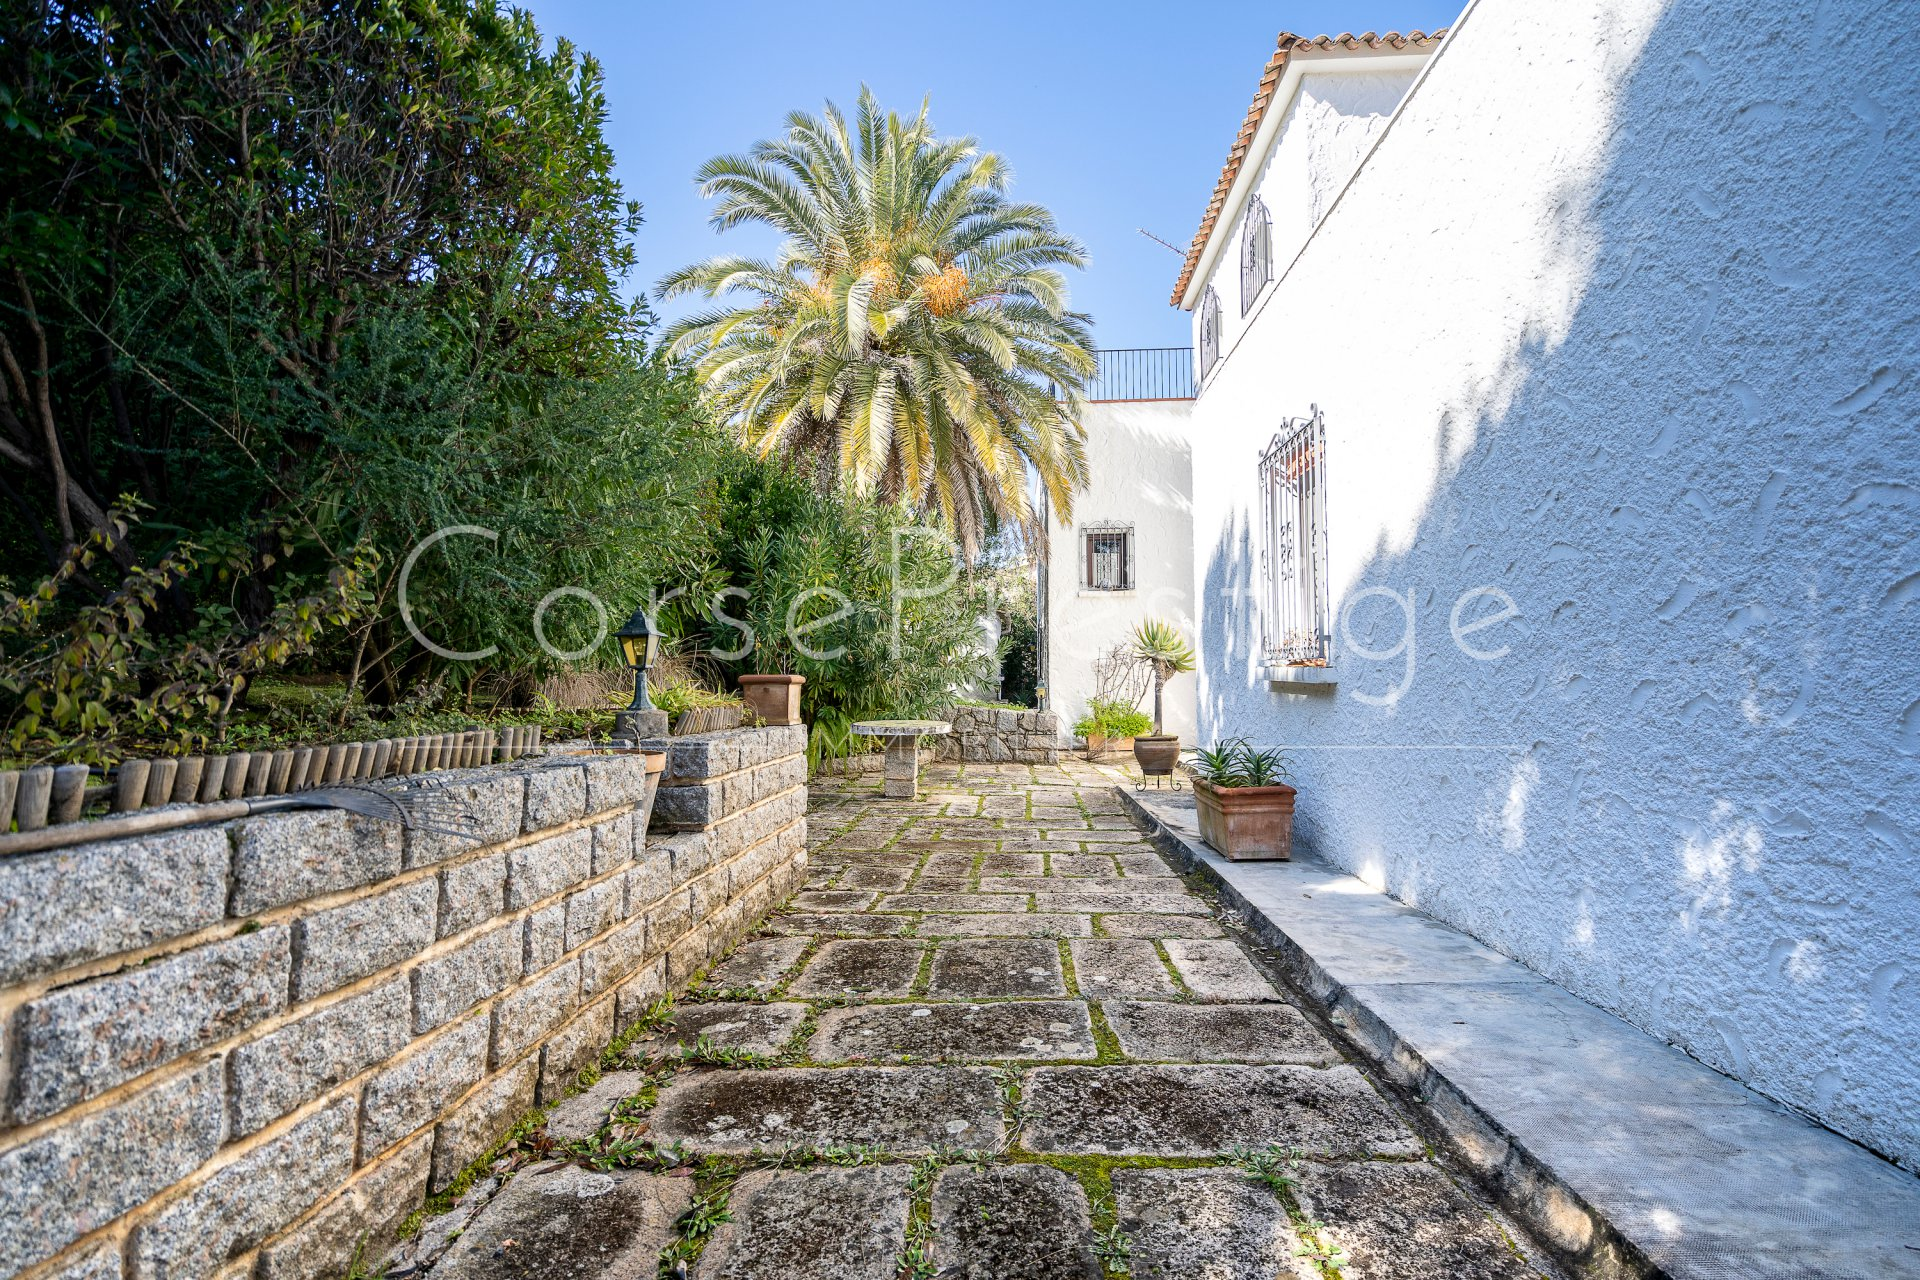 ajaccio gulf - peninsula of isolella - property for sale image3